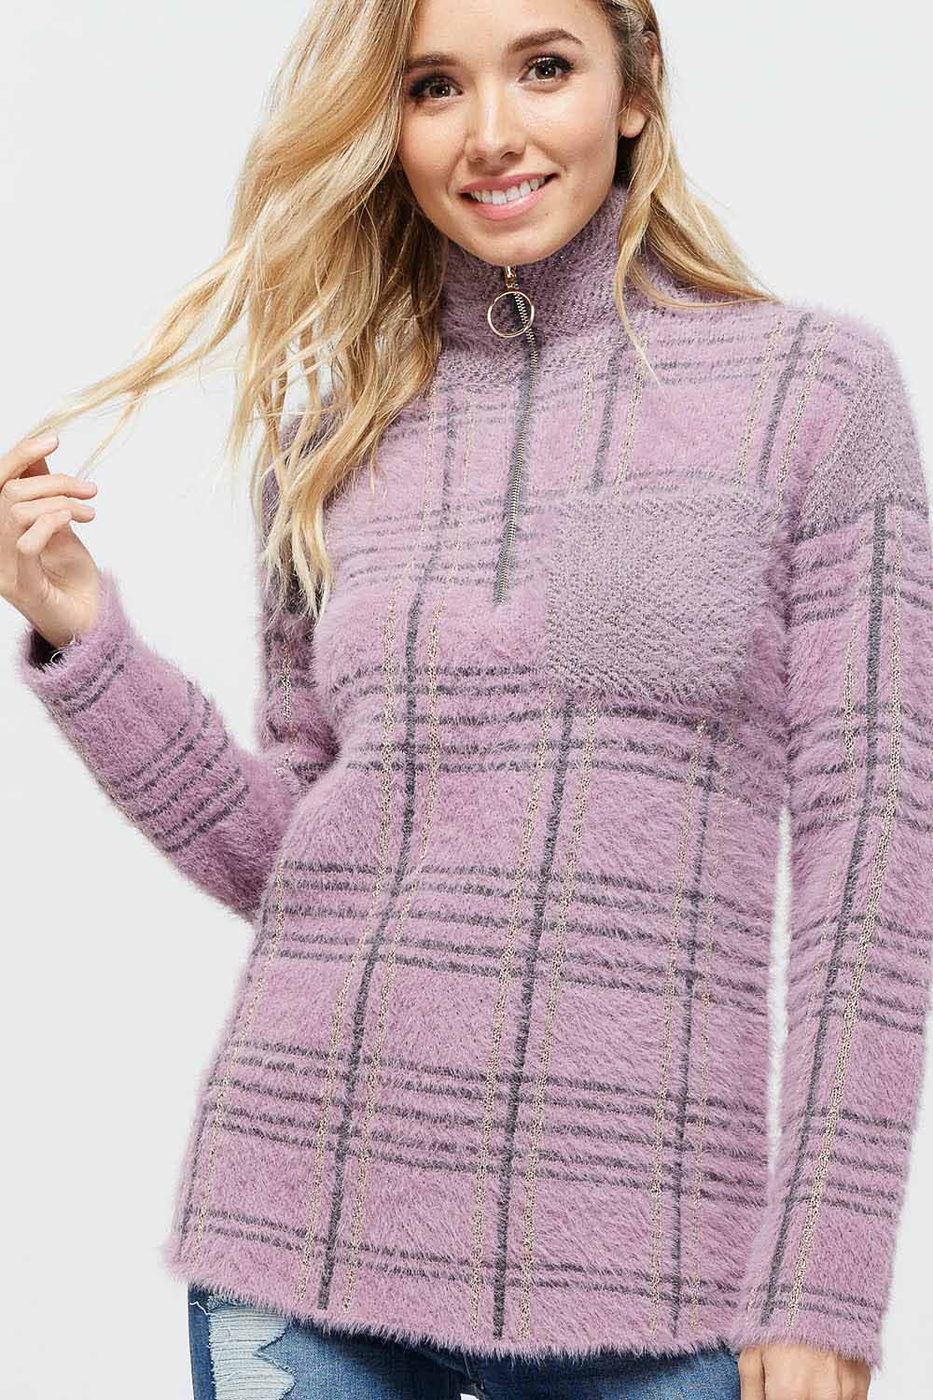 PLAID PULLOVER SWEATER - orangeshine.com